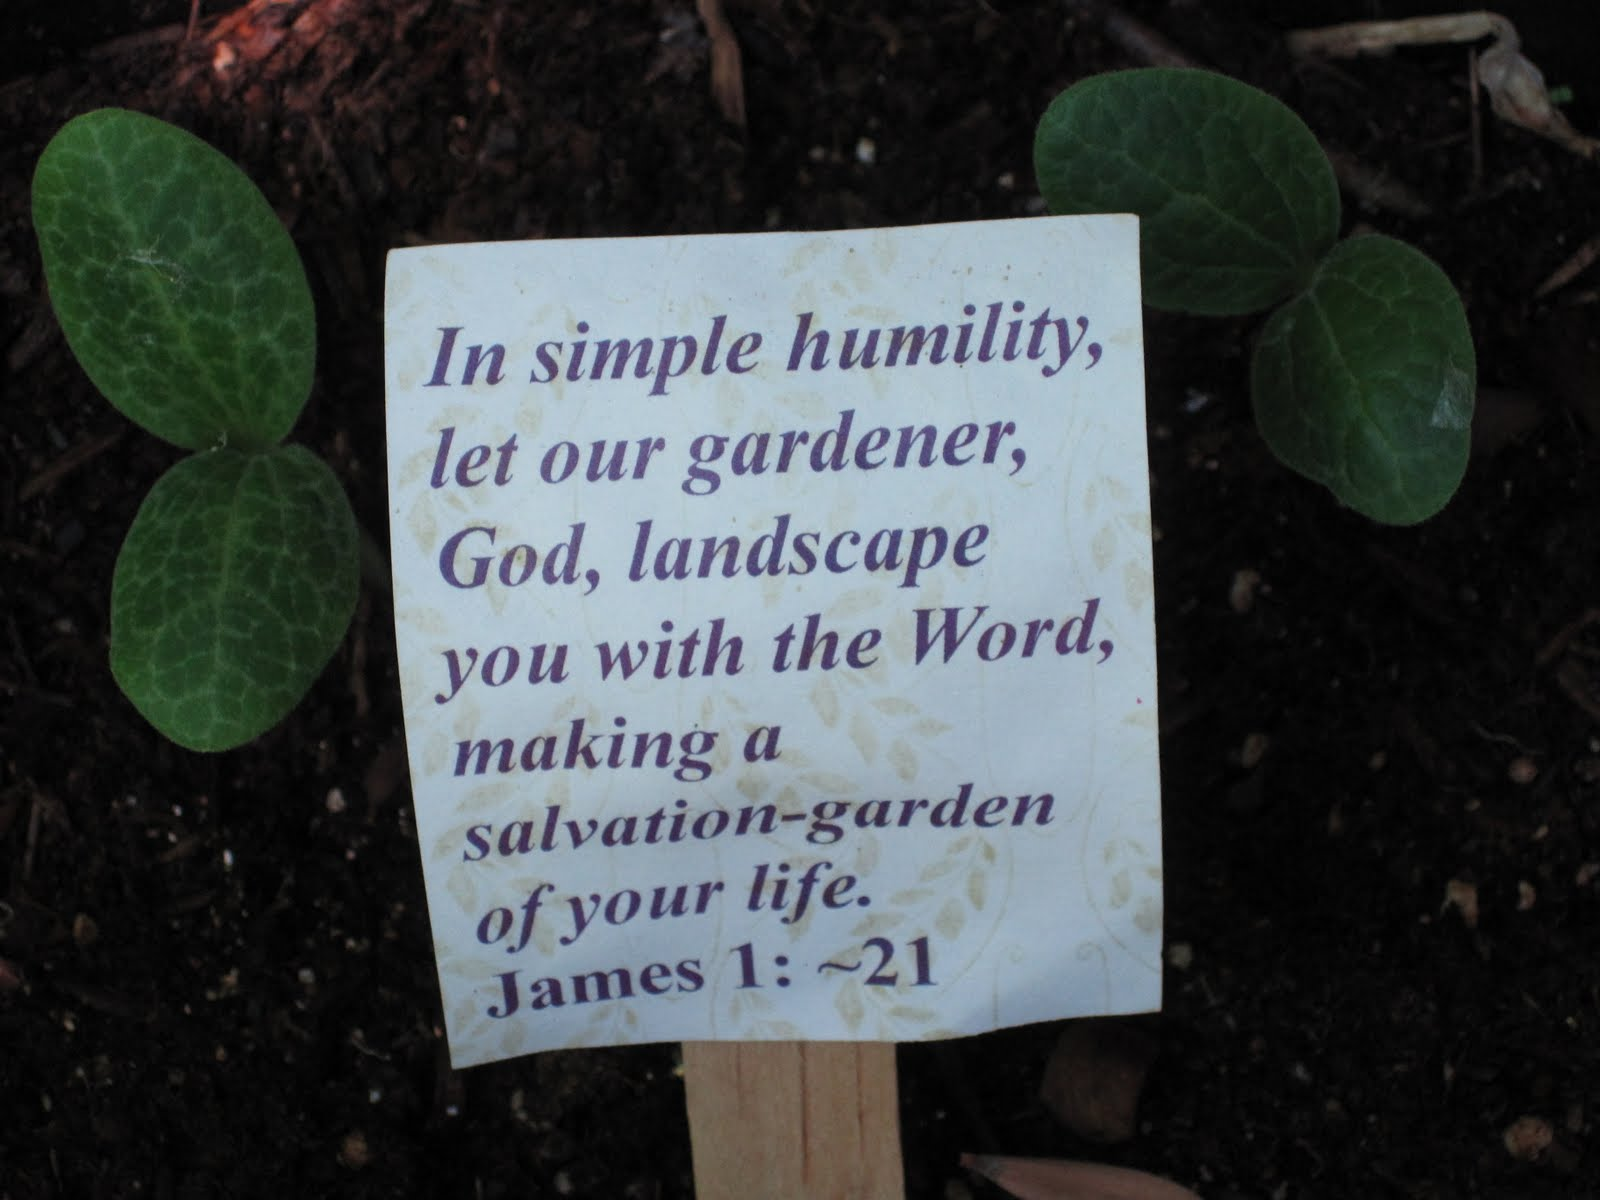 Eyes on christ garden related bible verses in simple humility let our gardener god landscape you with the word making a salvation garden of your life izmirmasajfo Gallery